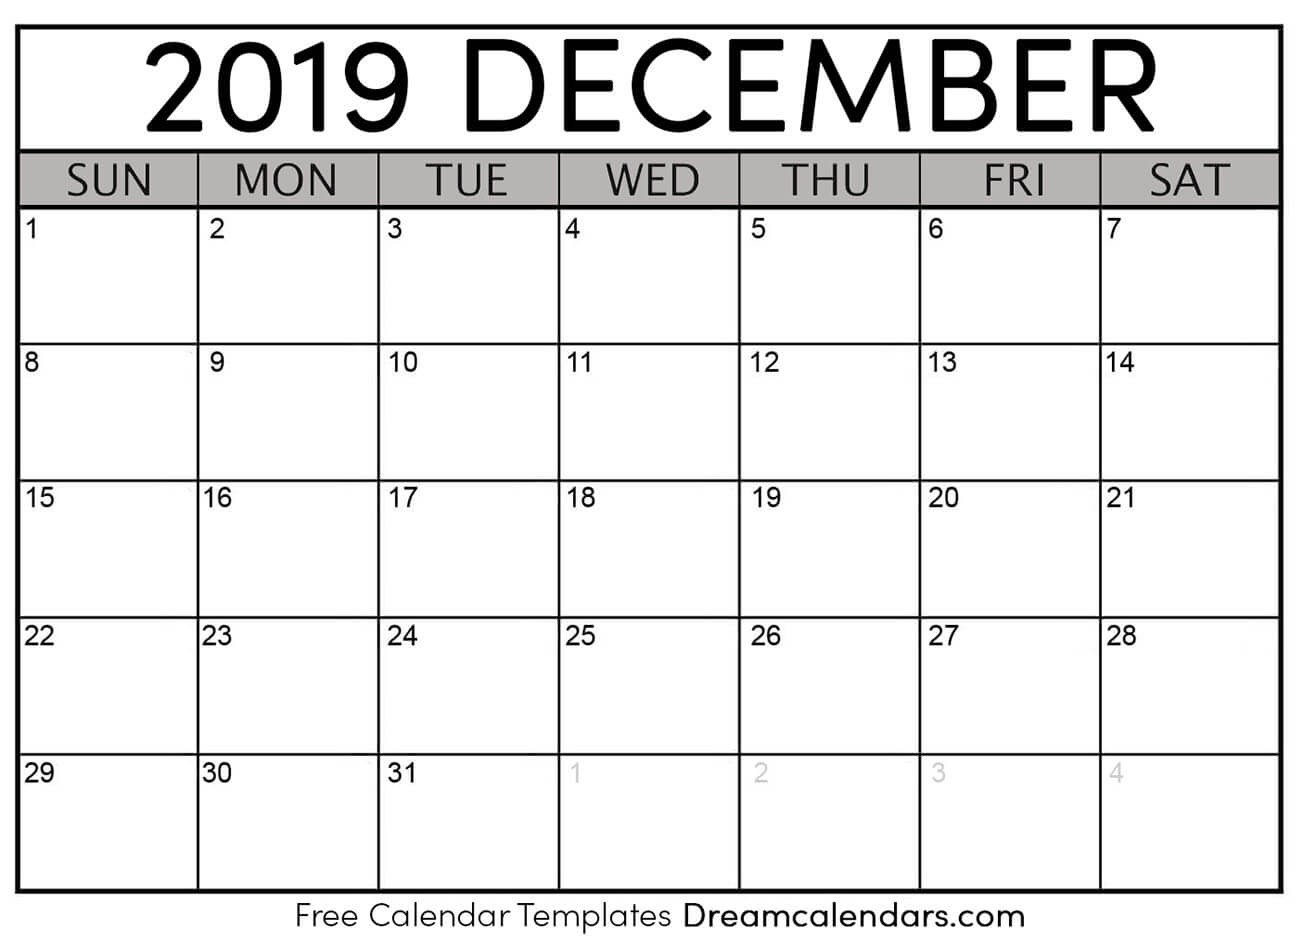 Printable December 2019 Calendar Templates Helena Orstem Medium